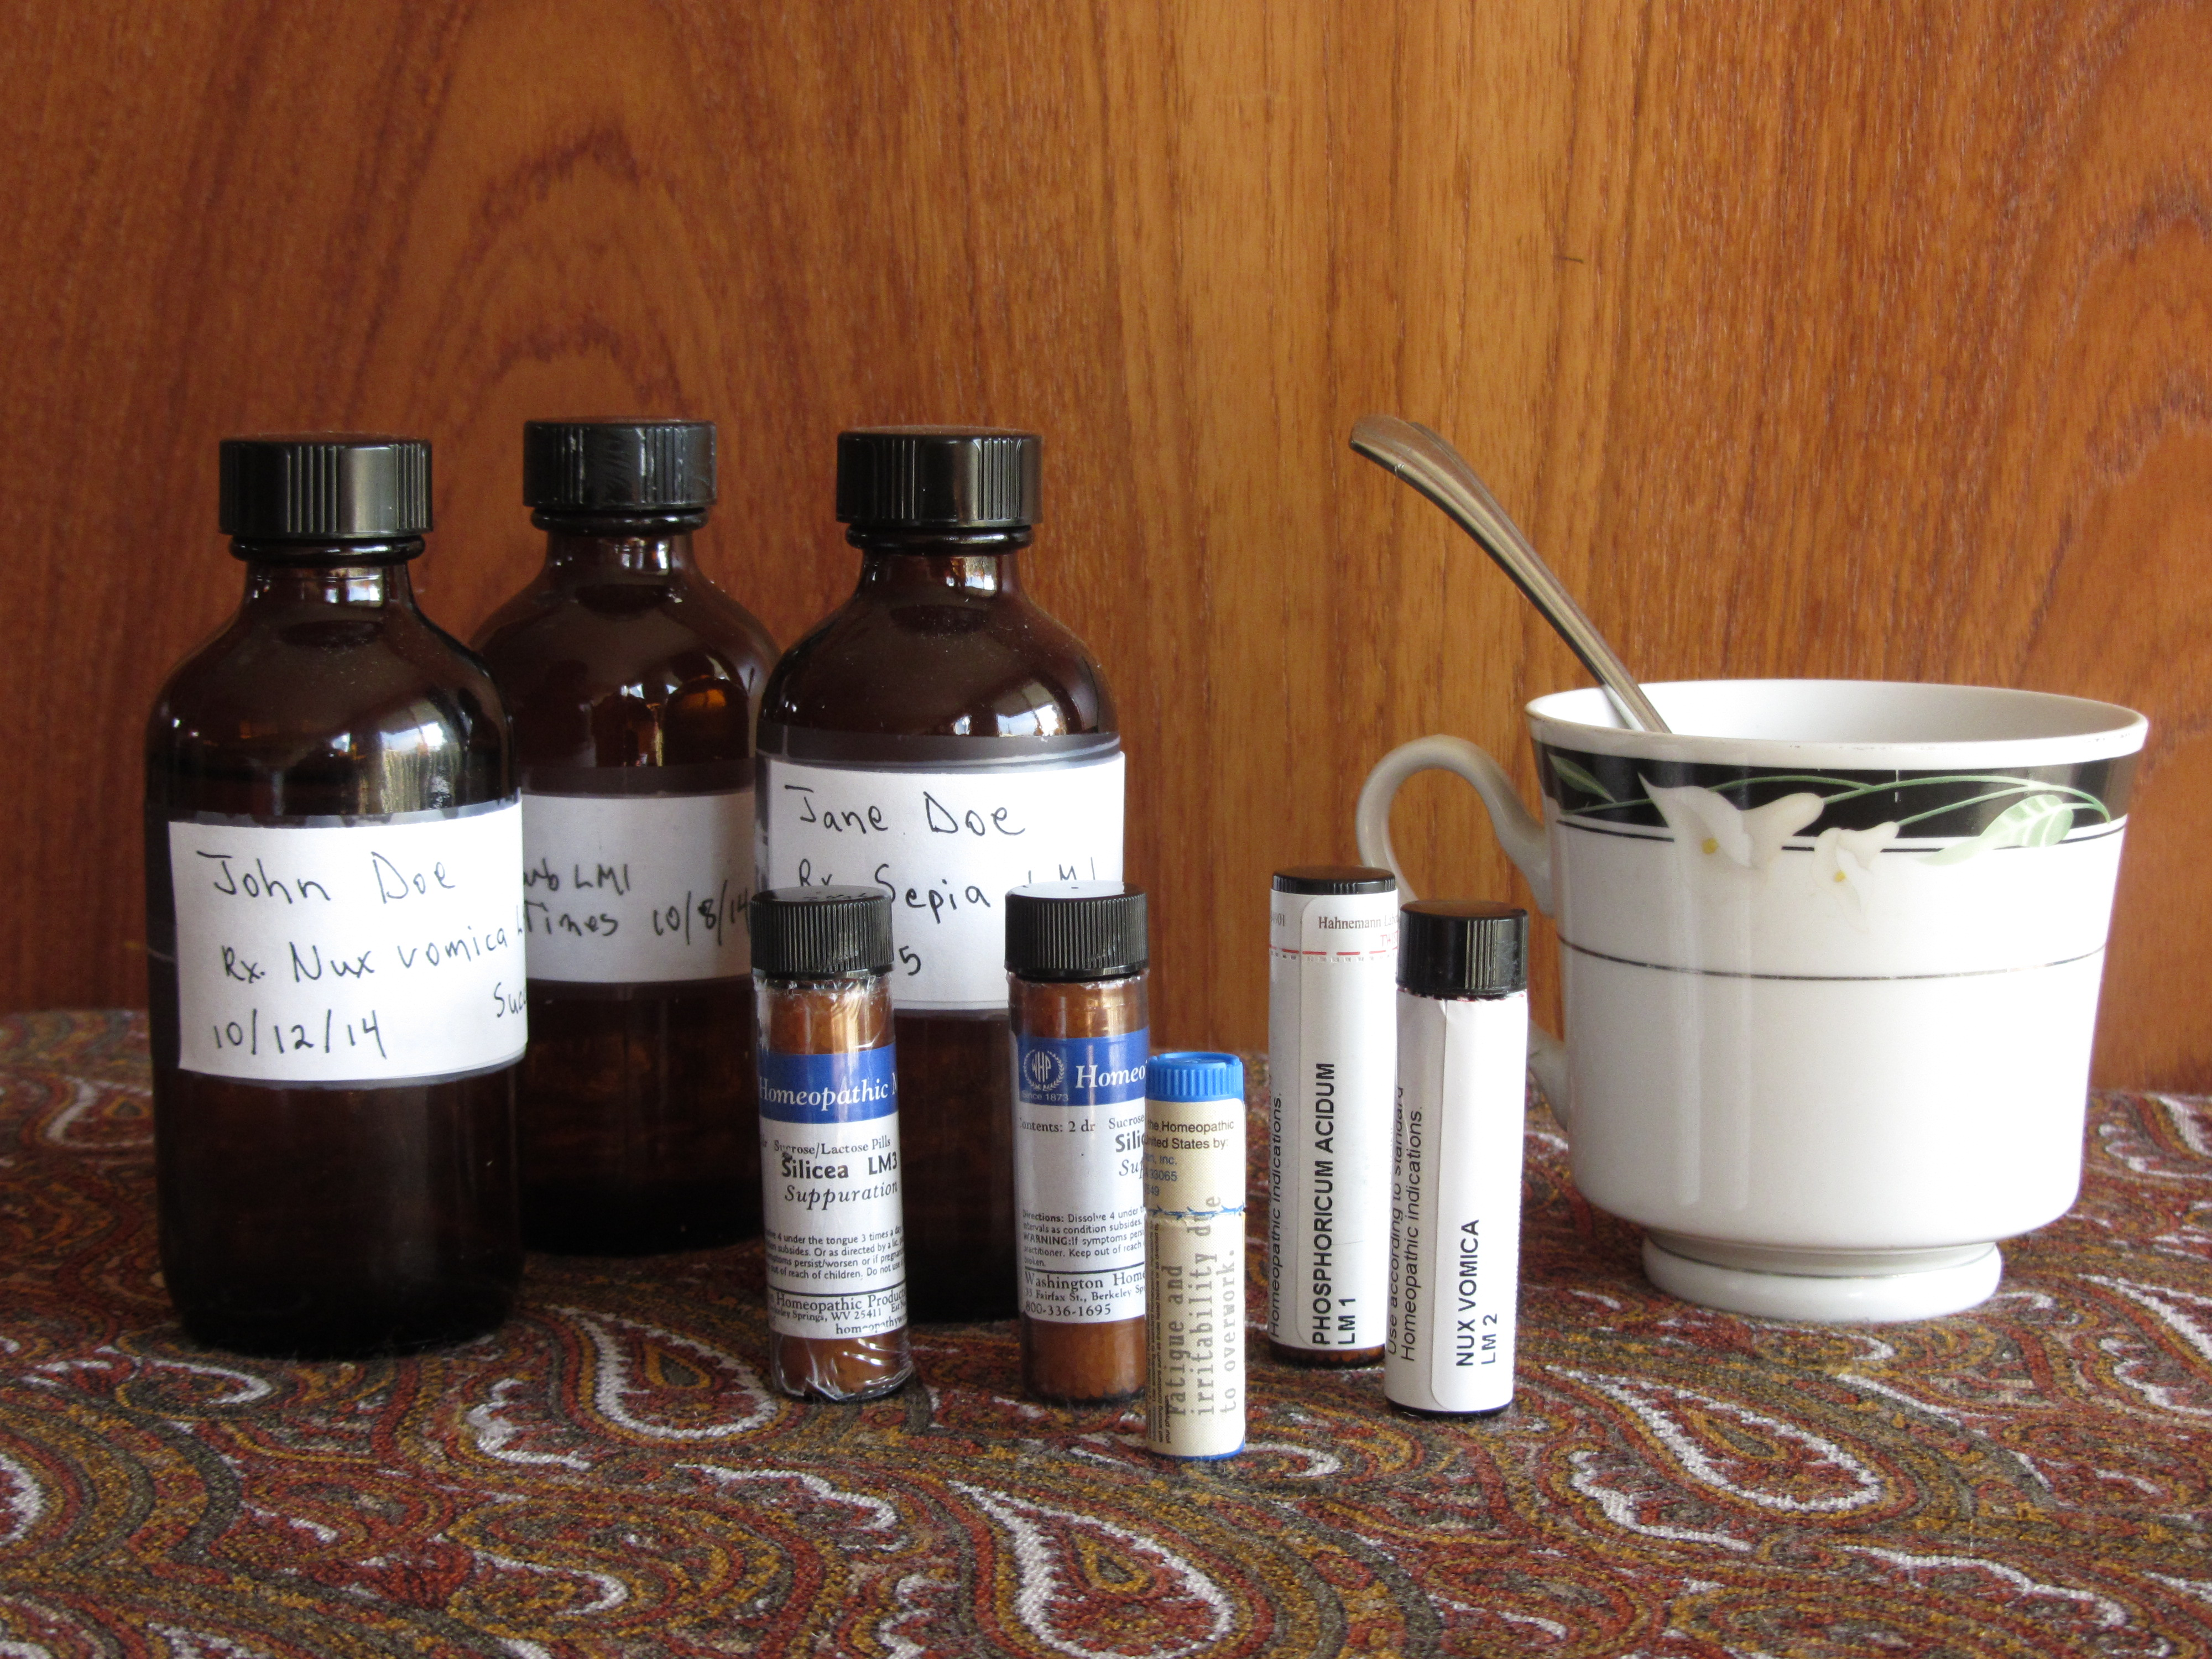 LM Potency Stock Bottles And Remedy